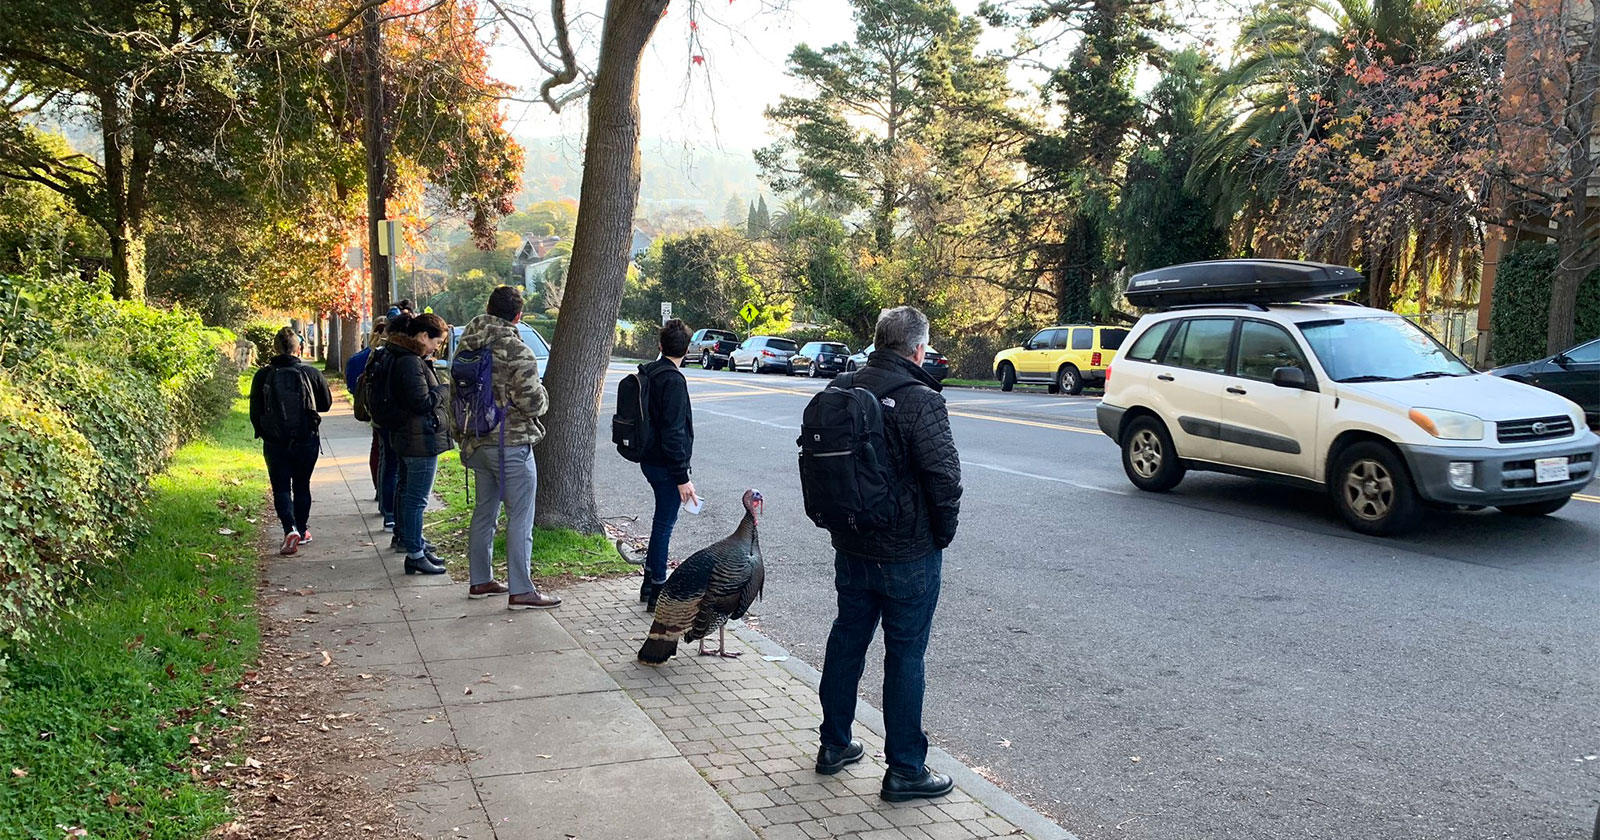 Gerald standing on sidewalk with people watching traffic. Photo: Mike Taylor